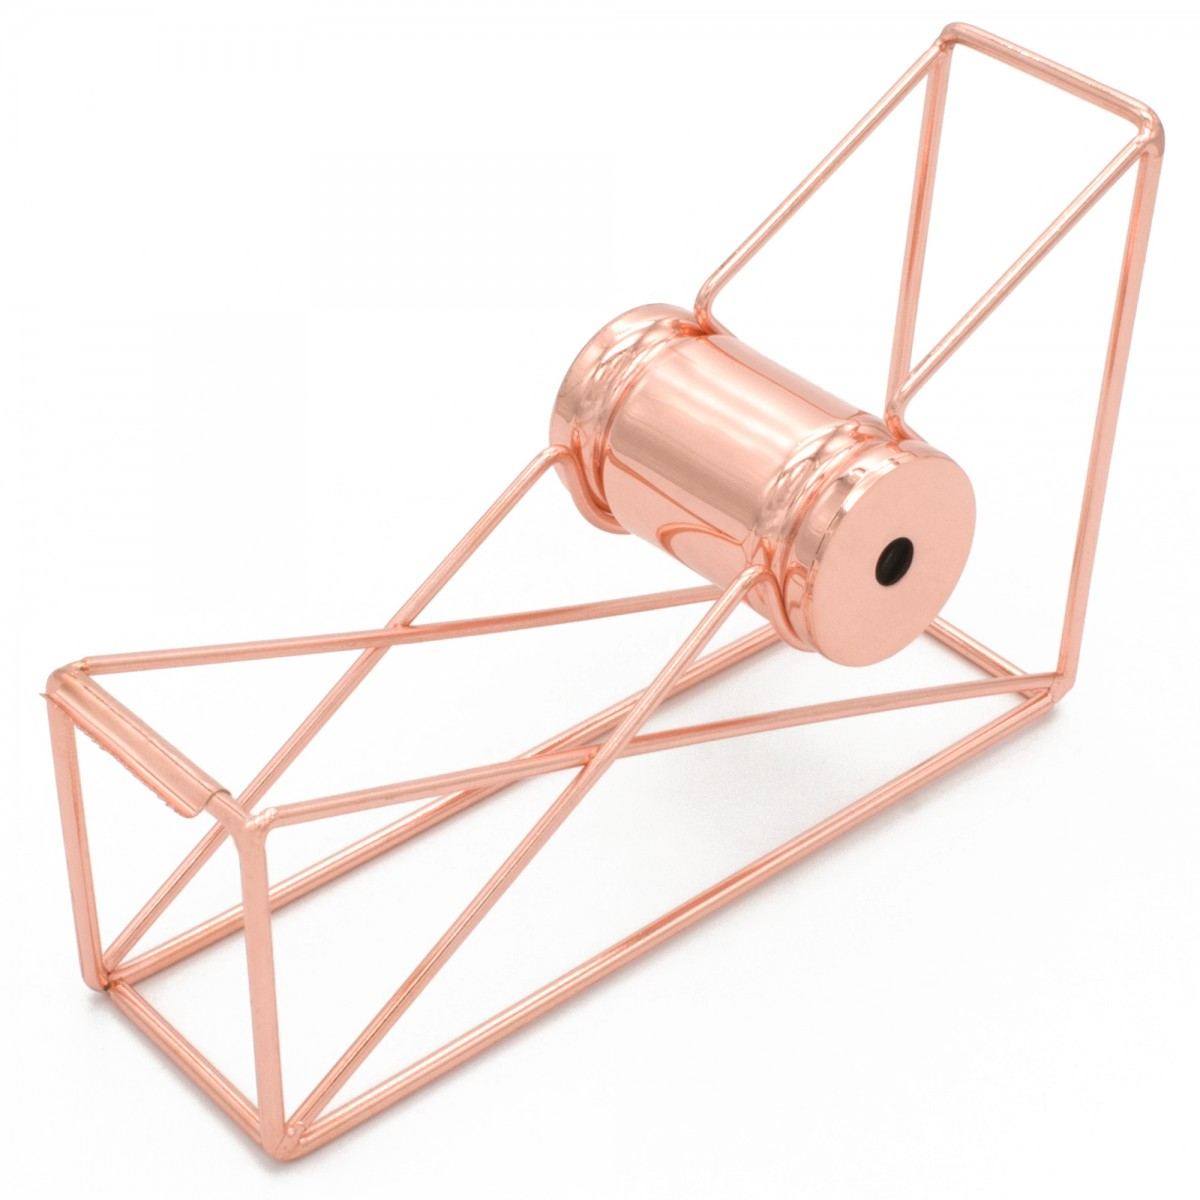 STATIONERY.LIFE STEEL FRAME TAPE DISPENSER ROSEGOLD